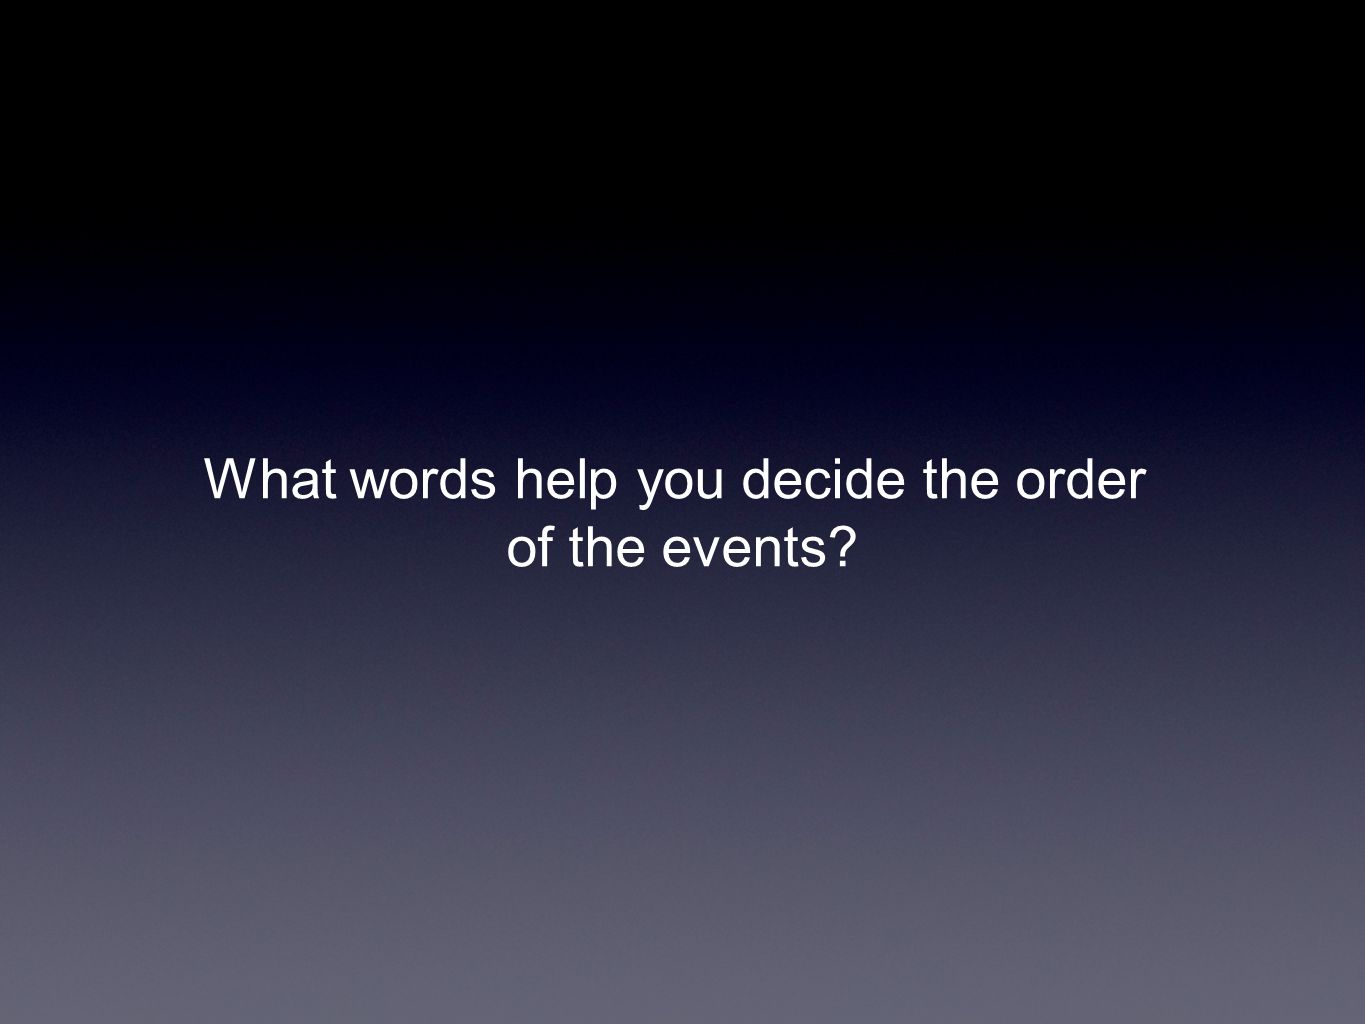 What words help you decide the order